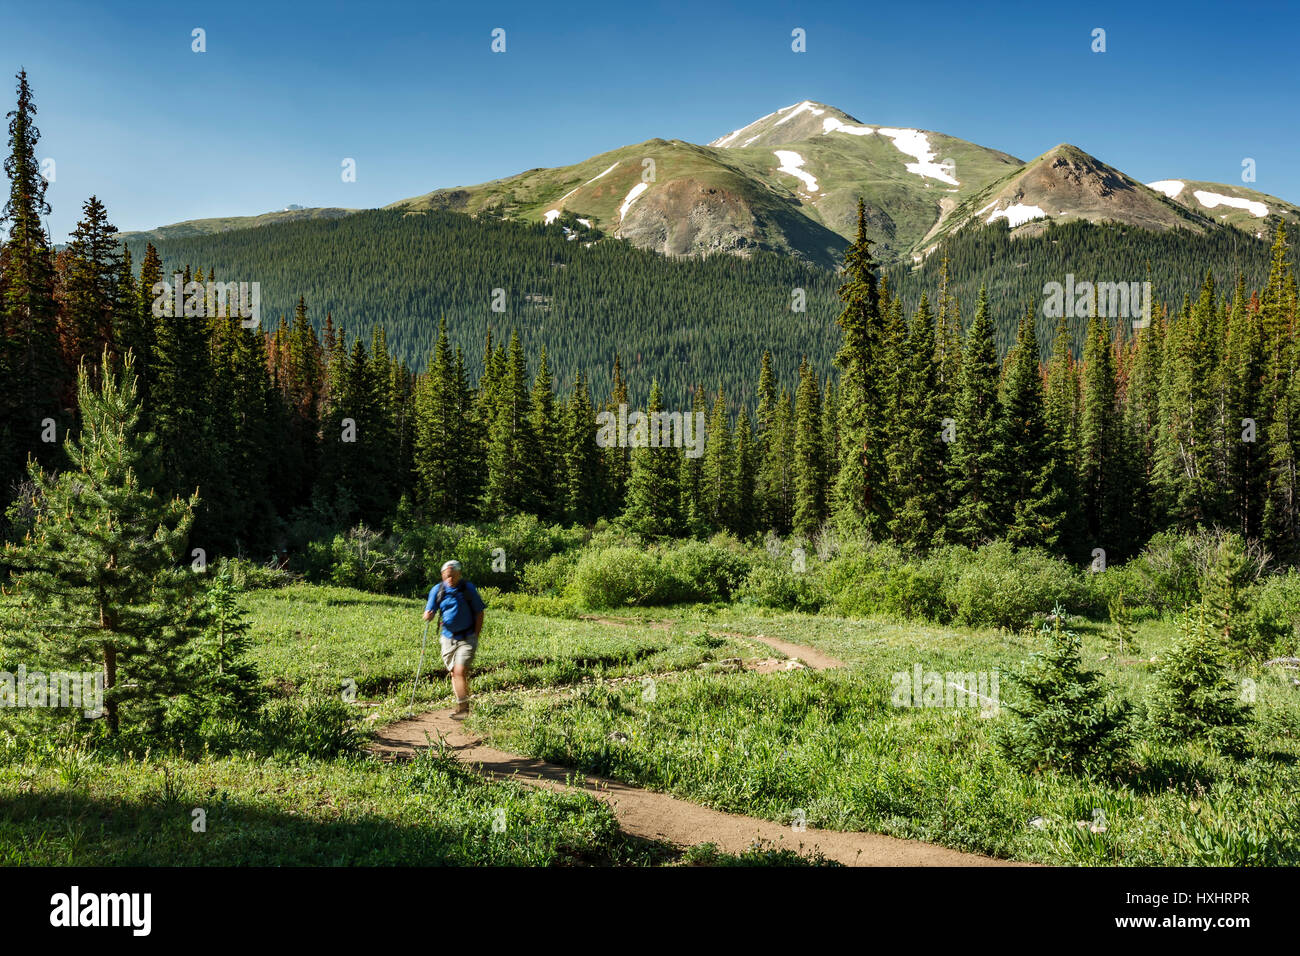 Hiker on Herman Gulch Trail, Arapaho National Forest, Colorado USA - Stock Image